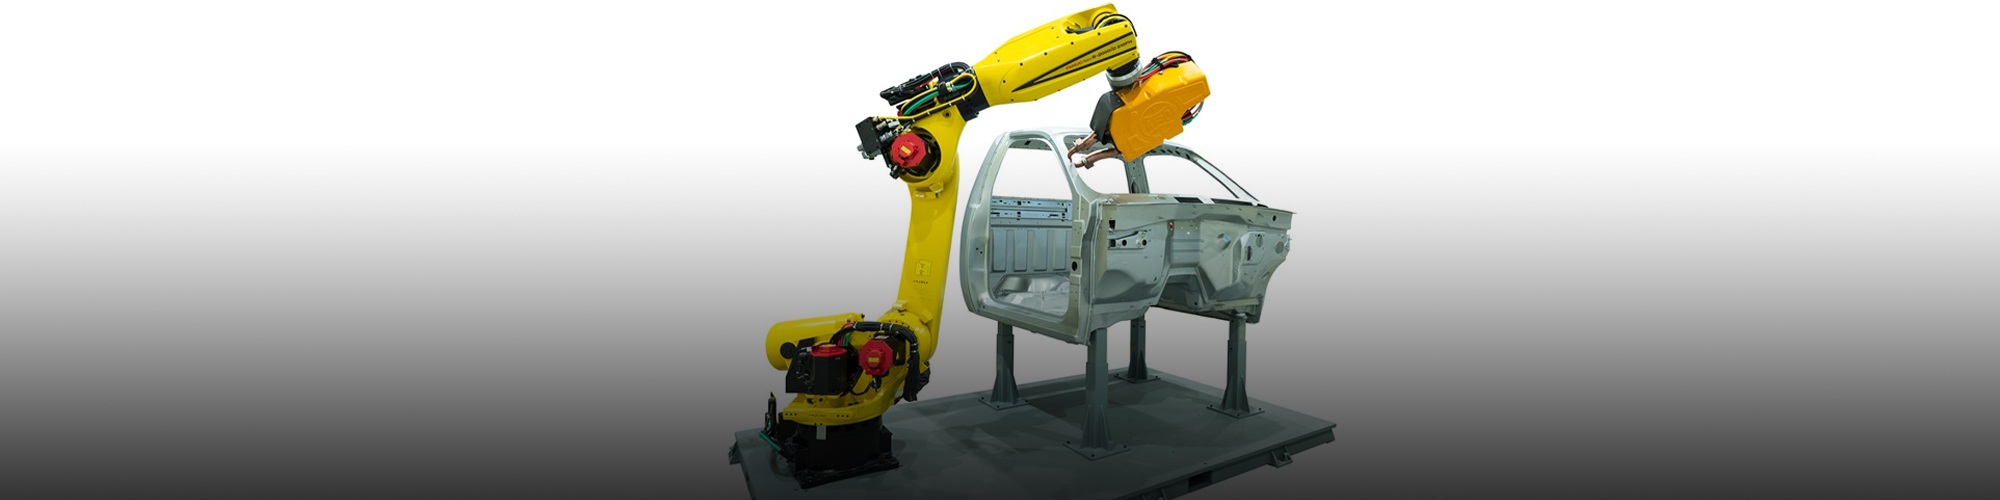 The FANUC America six-axis R-2000iD/210FH robot. (Image: FANUC America)